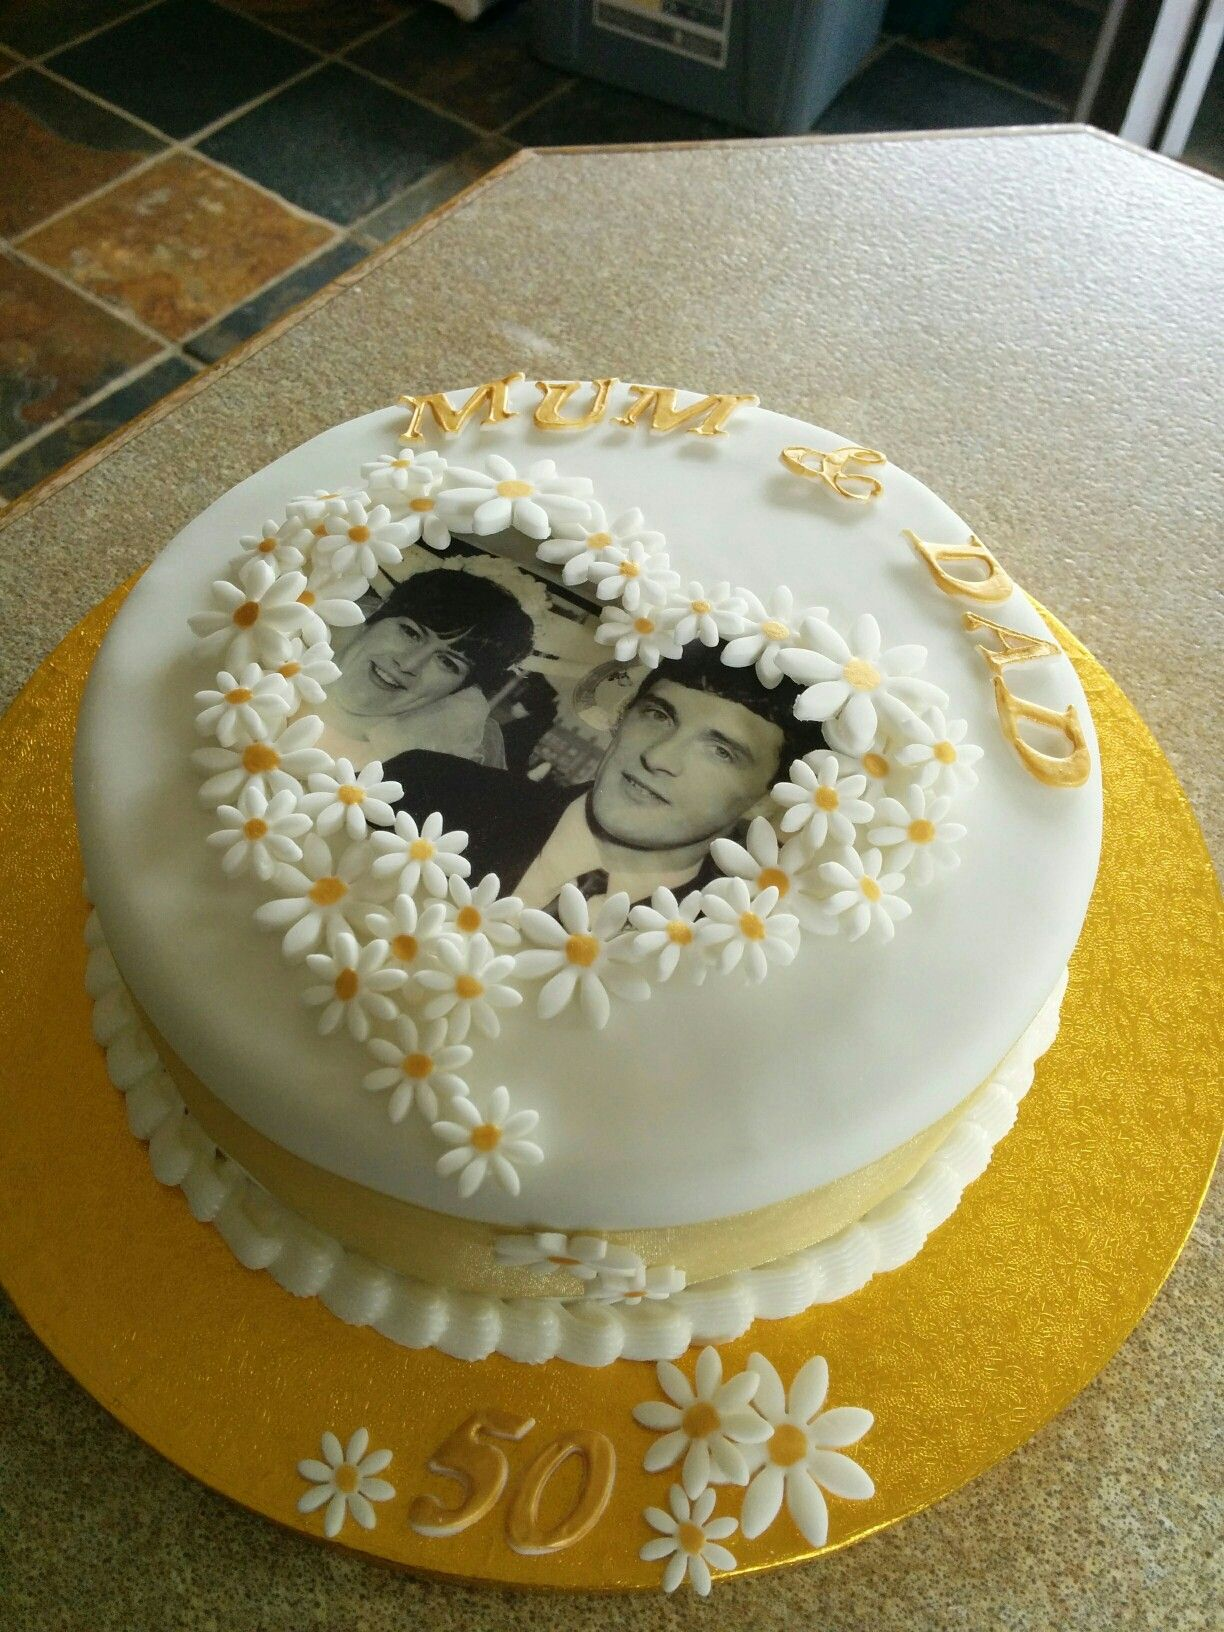 Golden wedding anniversary cake with edible photo and golden daisies